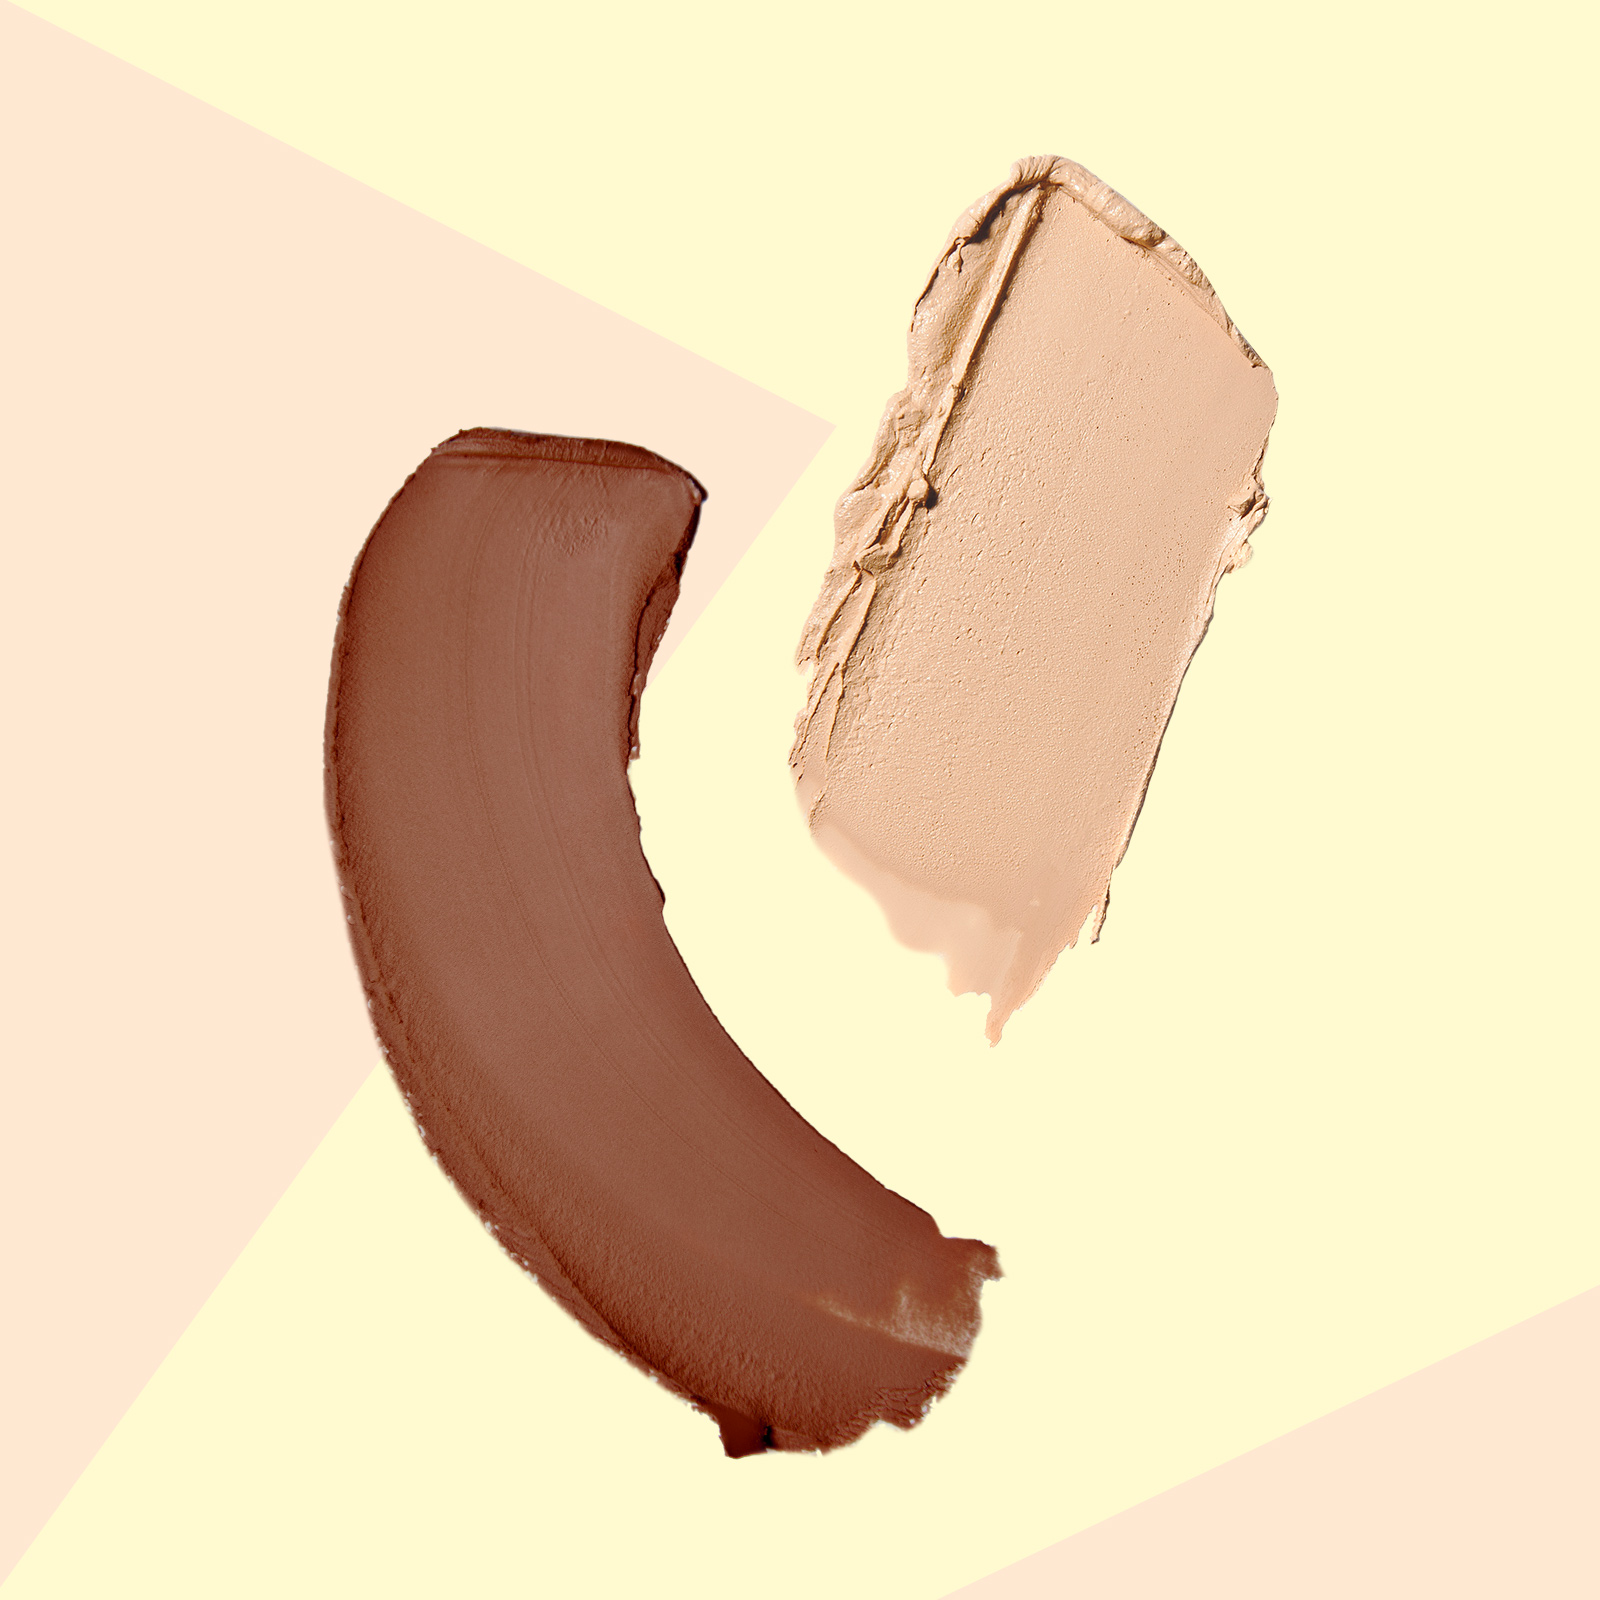 <p>Cystic Acne Concealers</p>